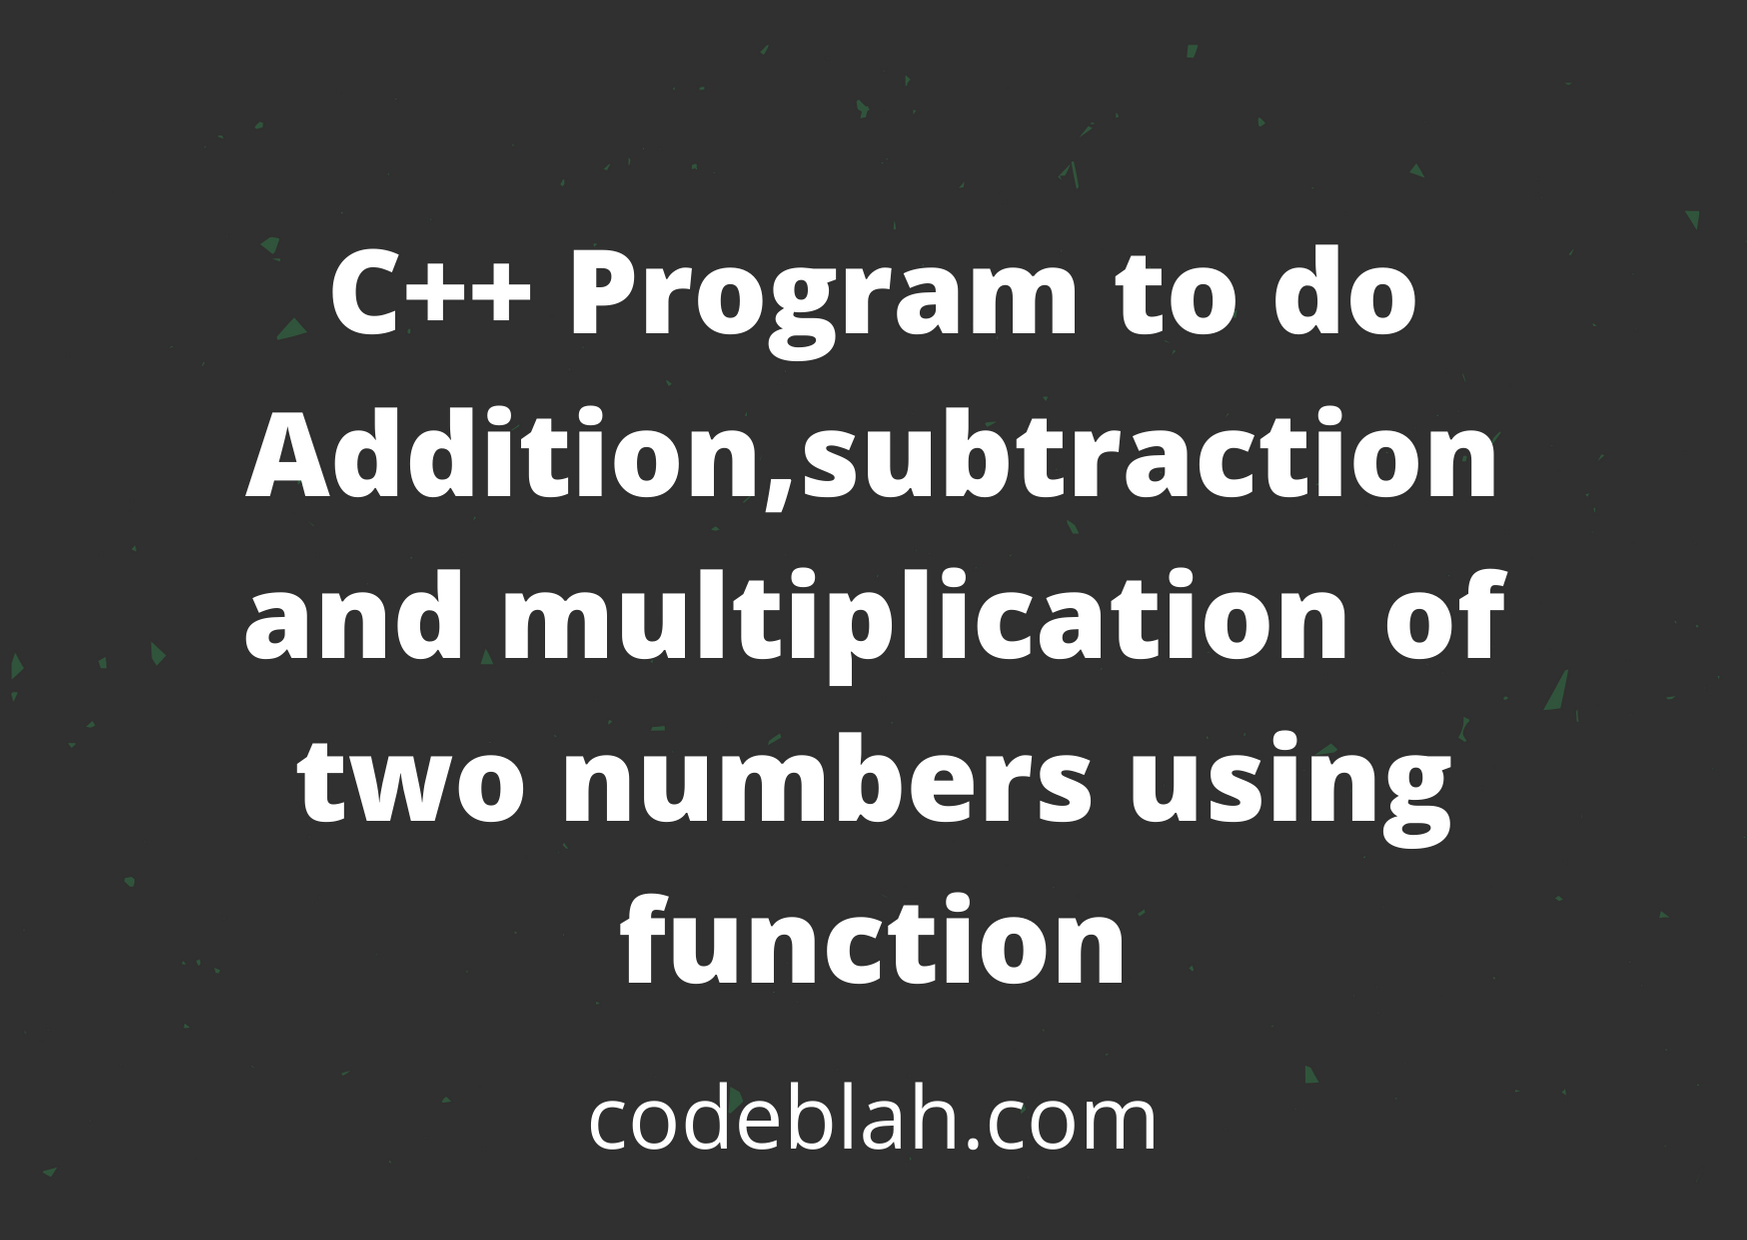 C++ Program to do Addition,subtraction and multiplication of two numbers using function